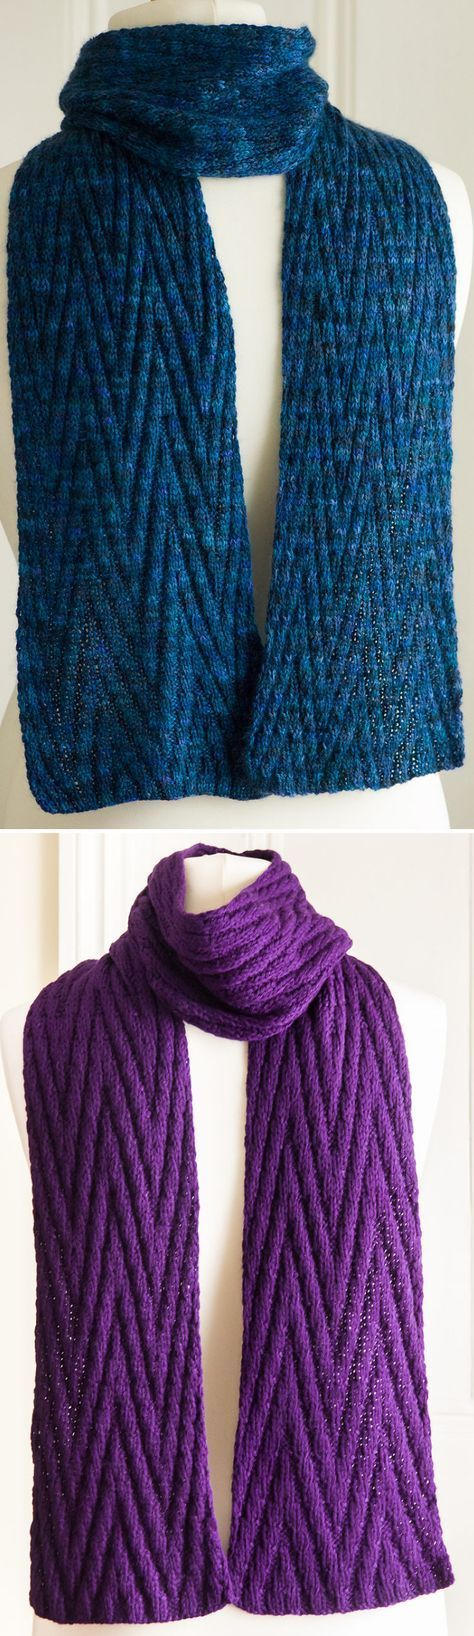 Free Knitting Pattern for Reversible Chevron Scarf - Completely reversible stitch pattern looks the same on both sides. Designed by Debbie Seton. Rated easy by most Ravelrers